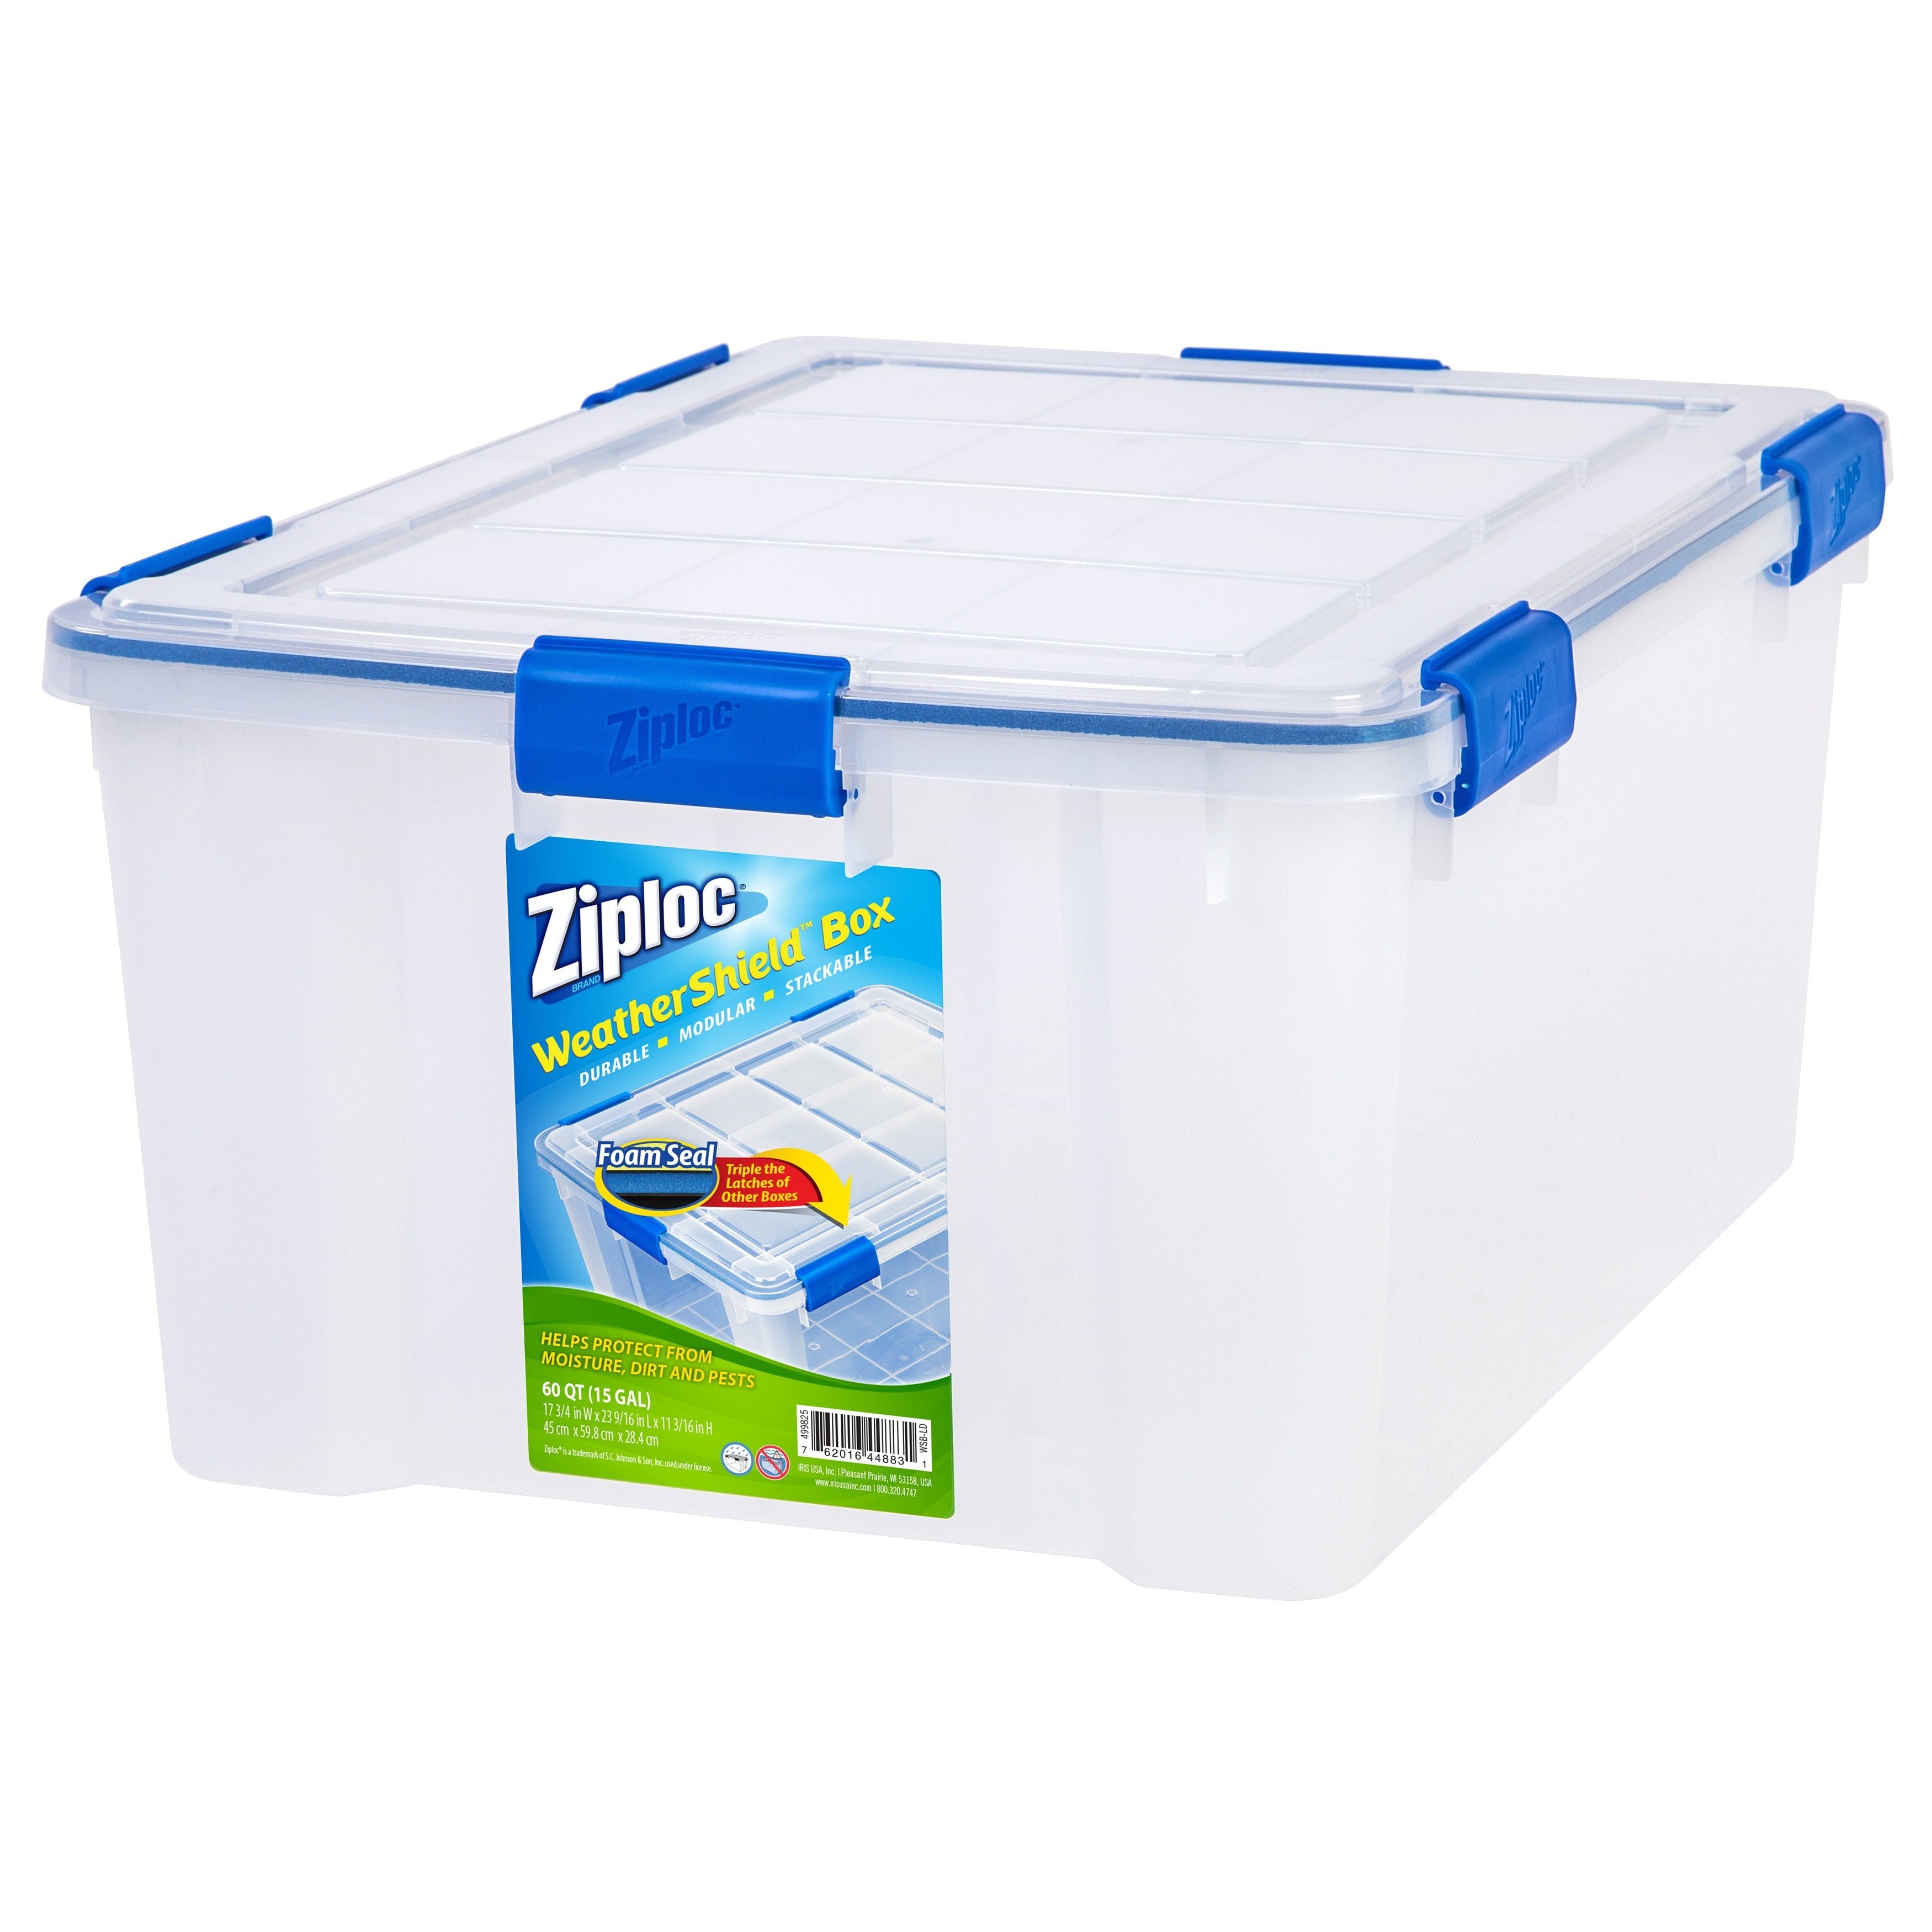 Beau Shop Ziploc WeatherShield 60 Qt. Plastic Storage Bin (Pack Of 4)   Free  Shipping Today   Overstock.com   17097267